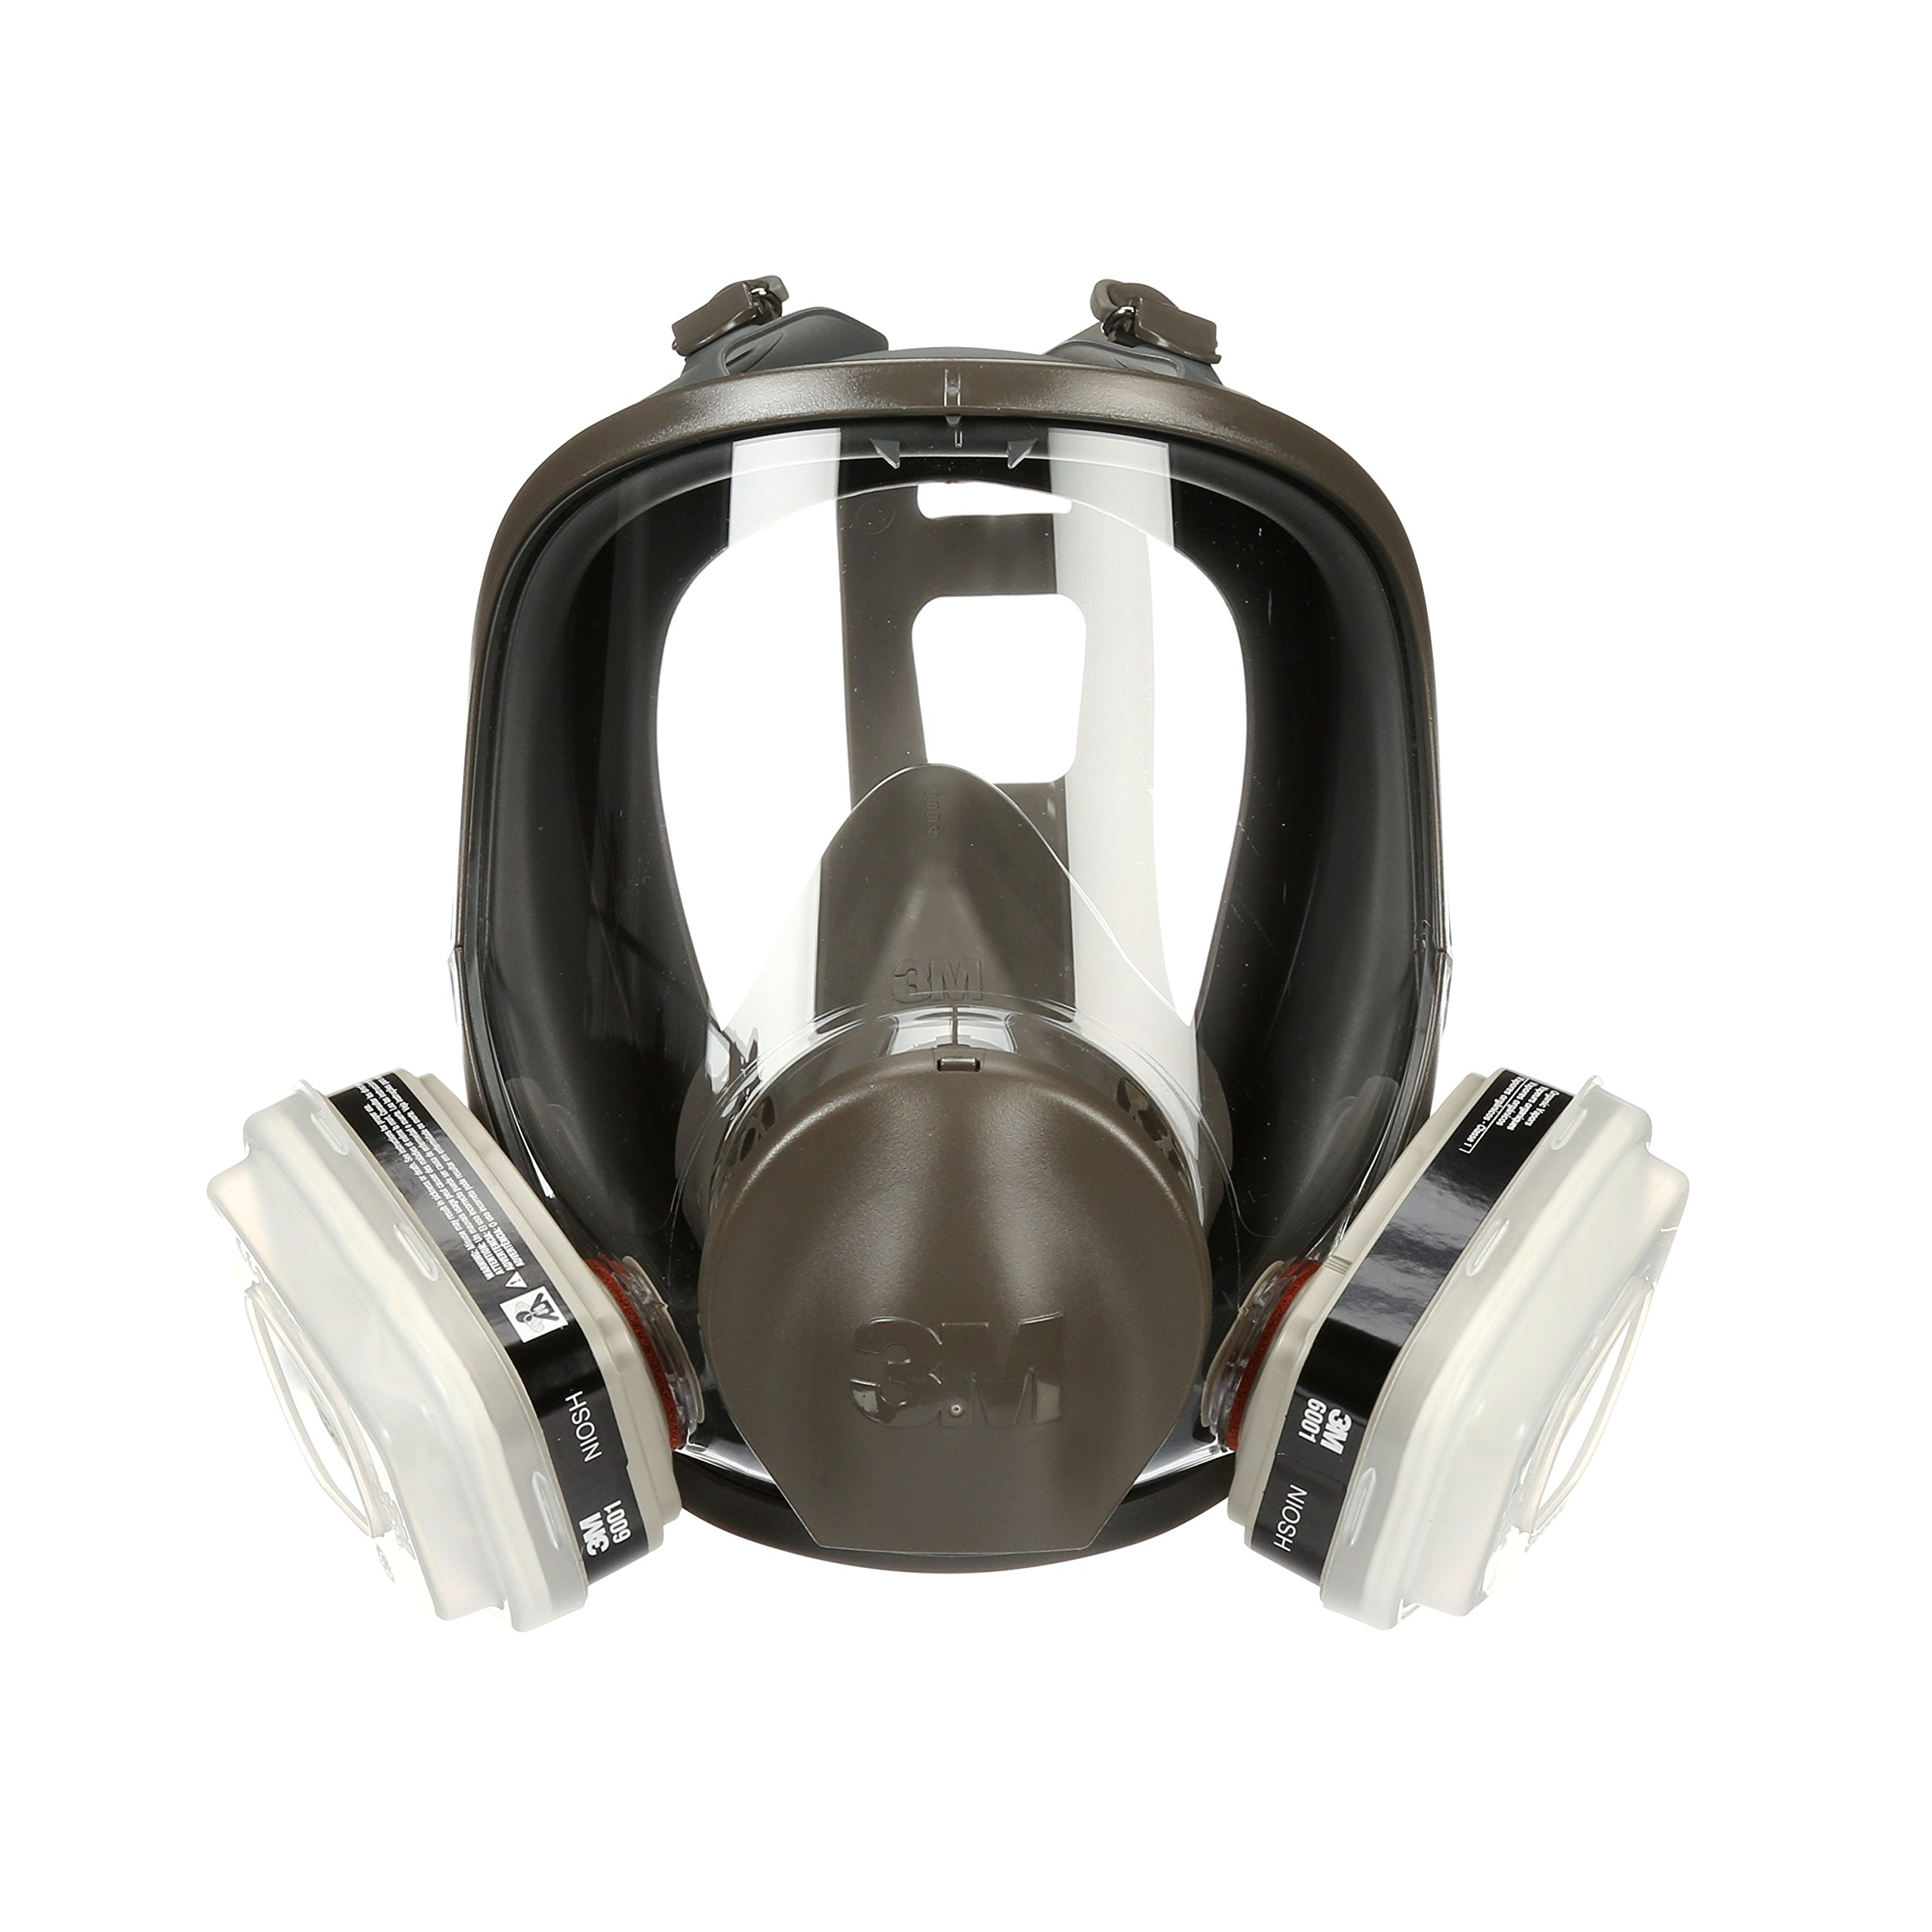 3M Full Face Paint Project Respirator, Large by 3M (Image #4)